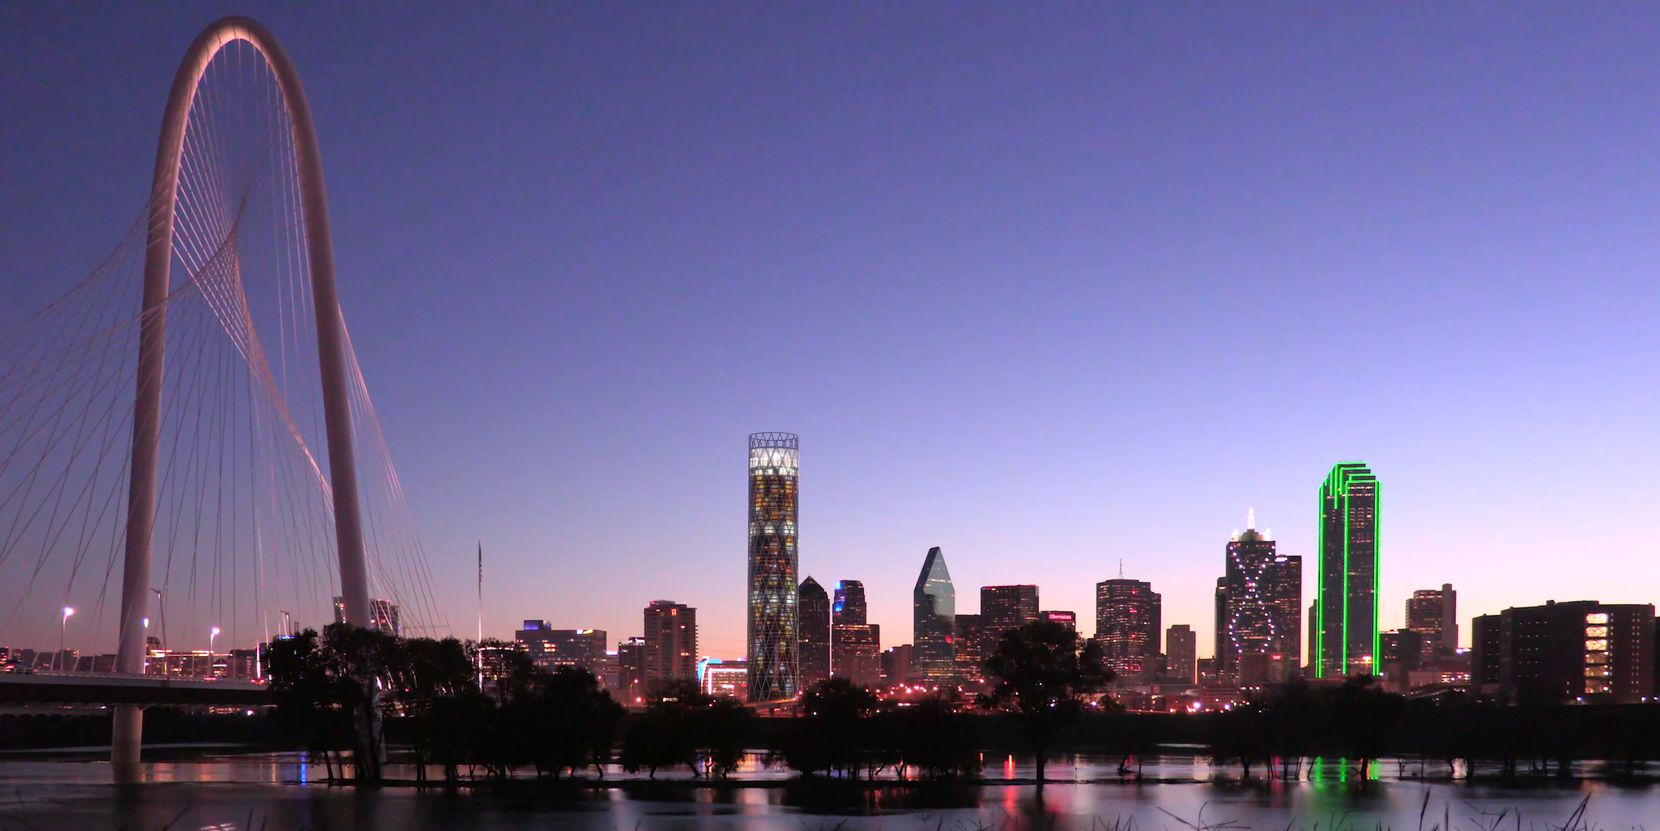 An architect's rendering shows the proposed tower on the Dallas skyline.